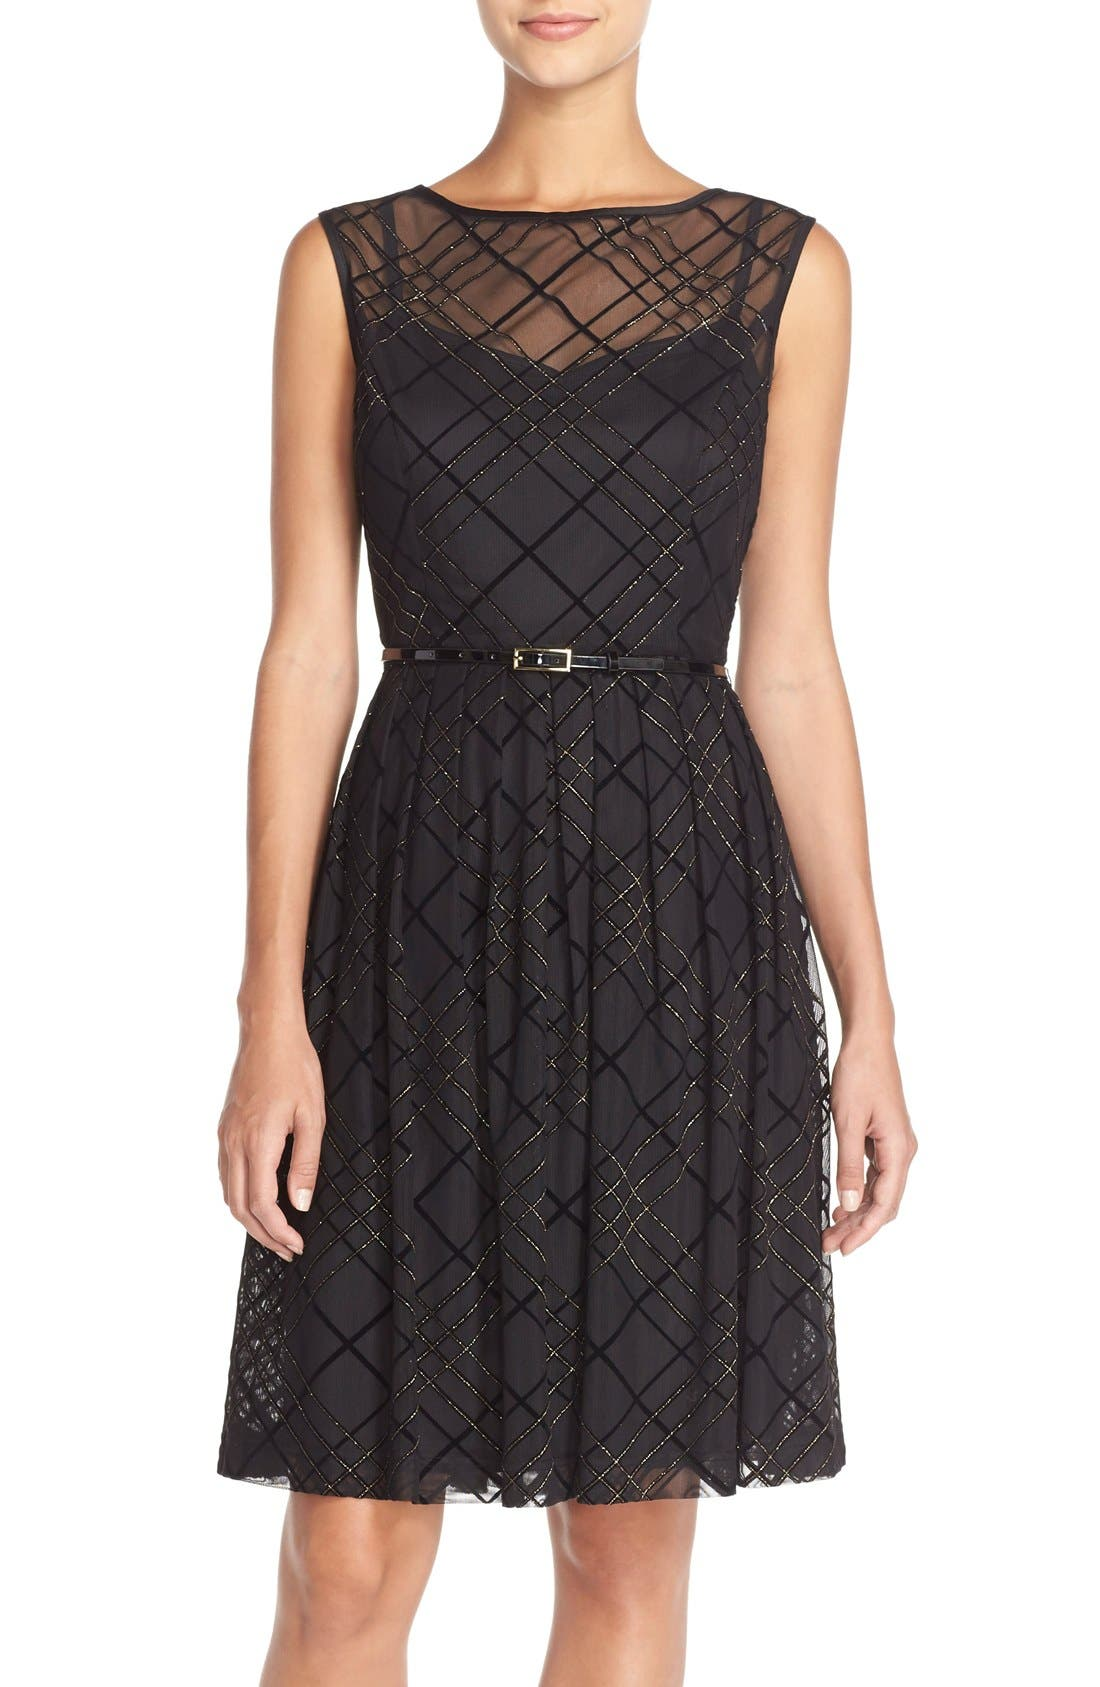 ELLEN TRACY Plaid Mesh Fit & Flare Dress